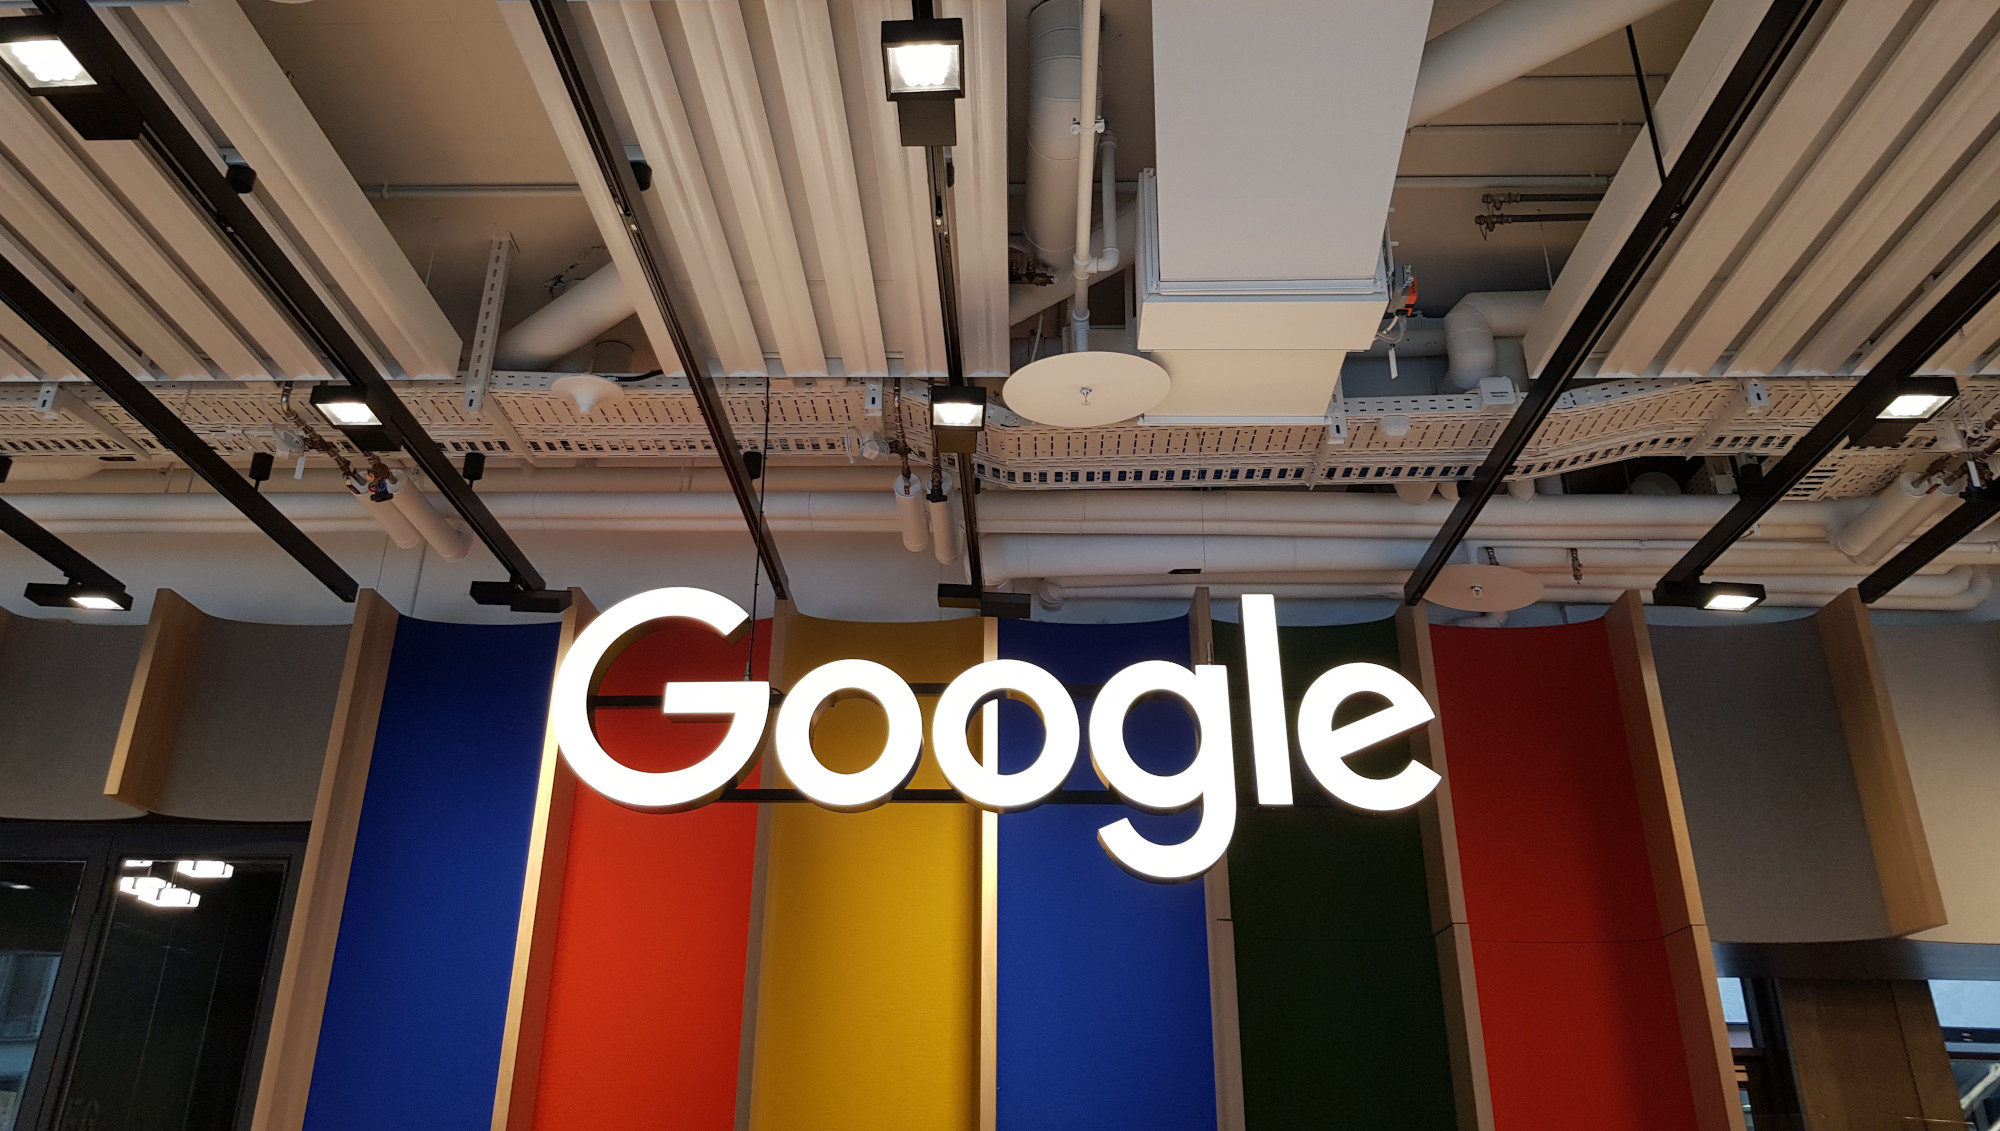 Google reception in Zurich